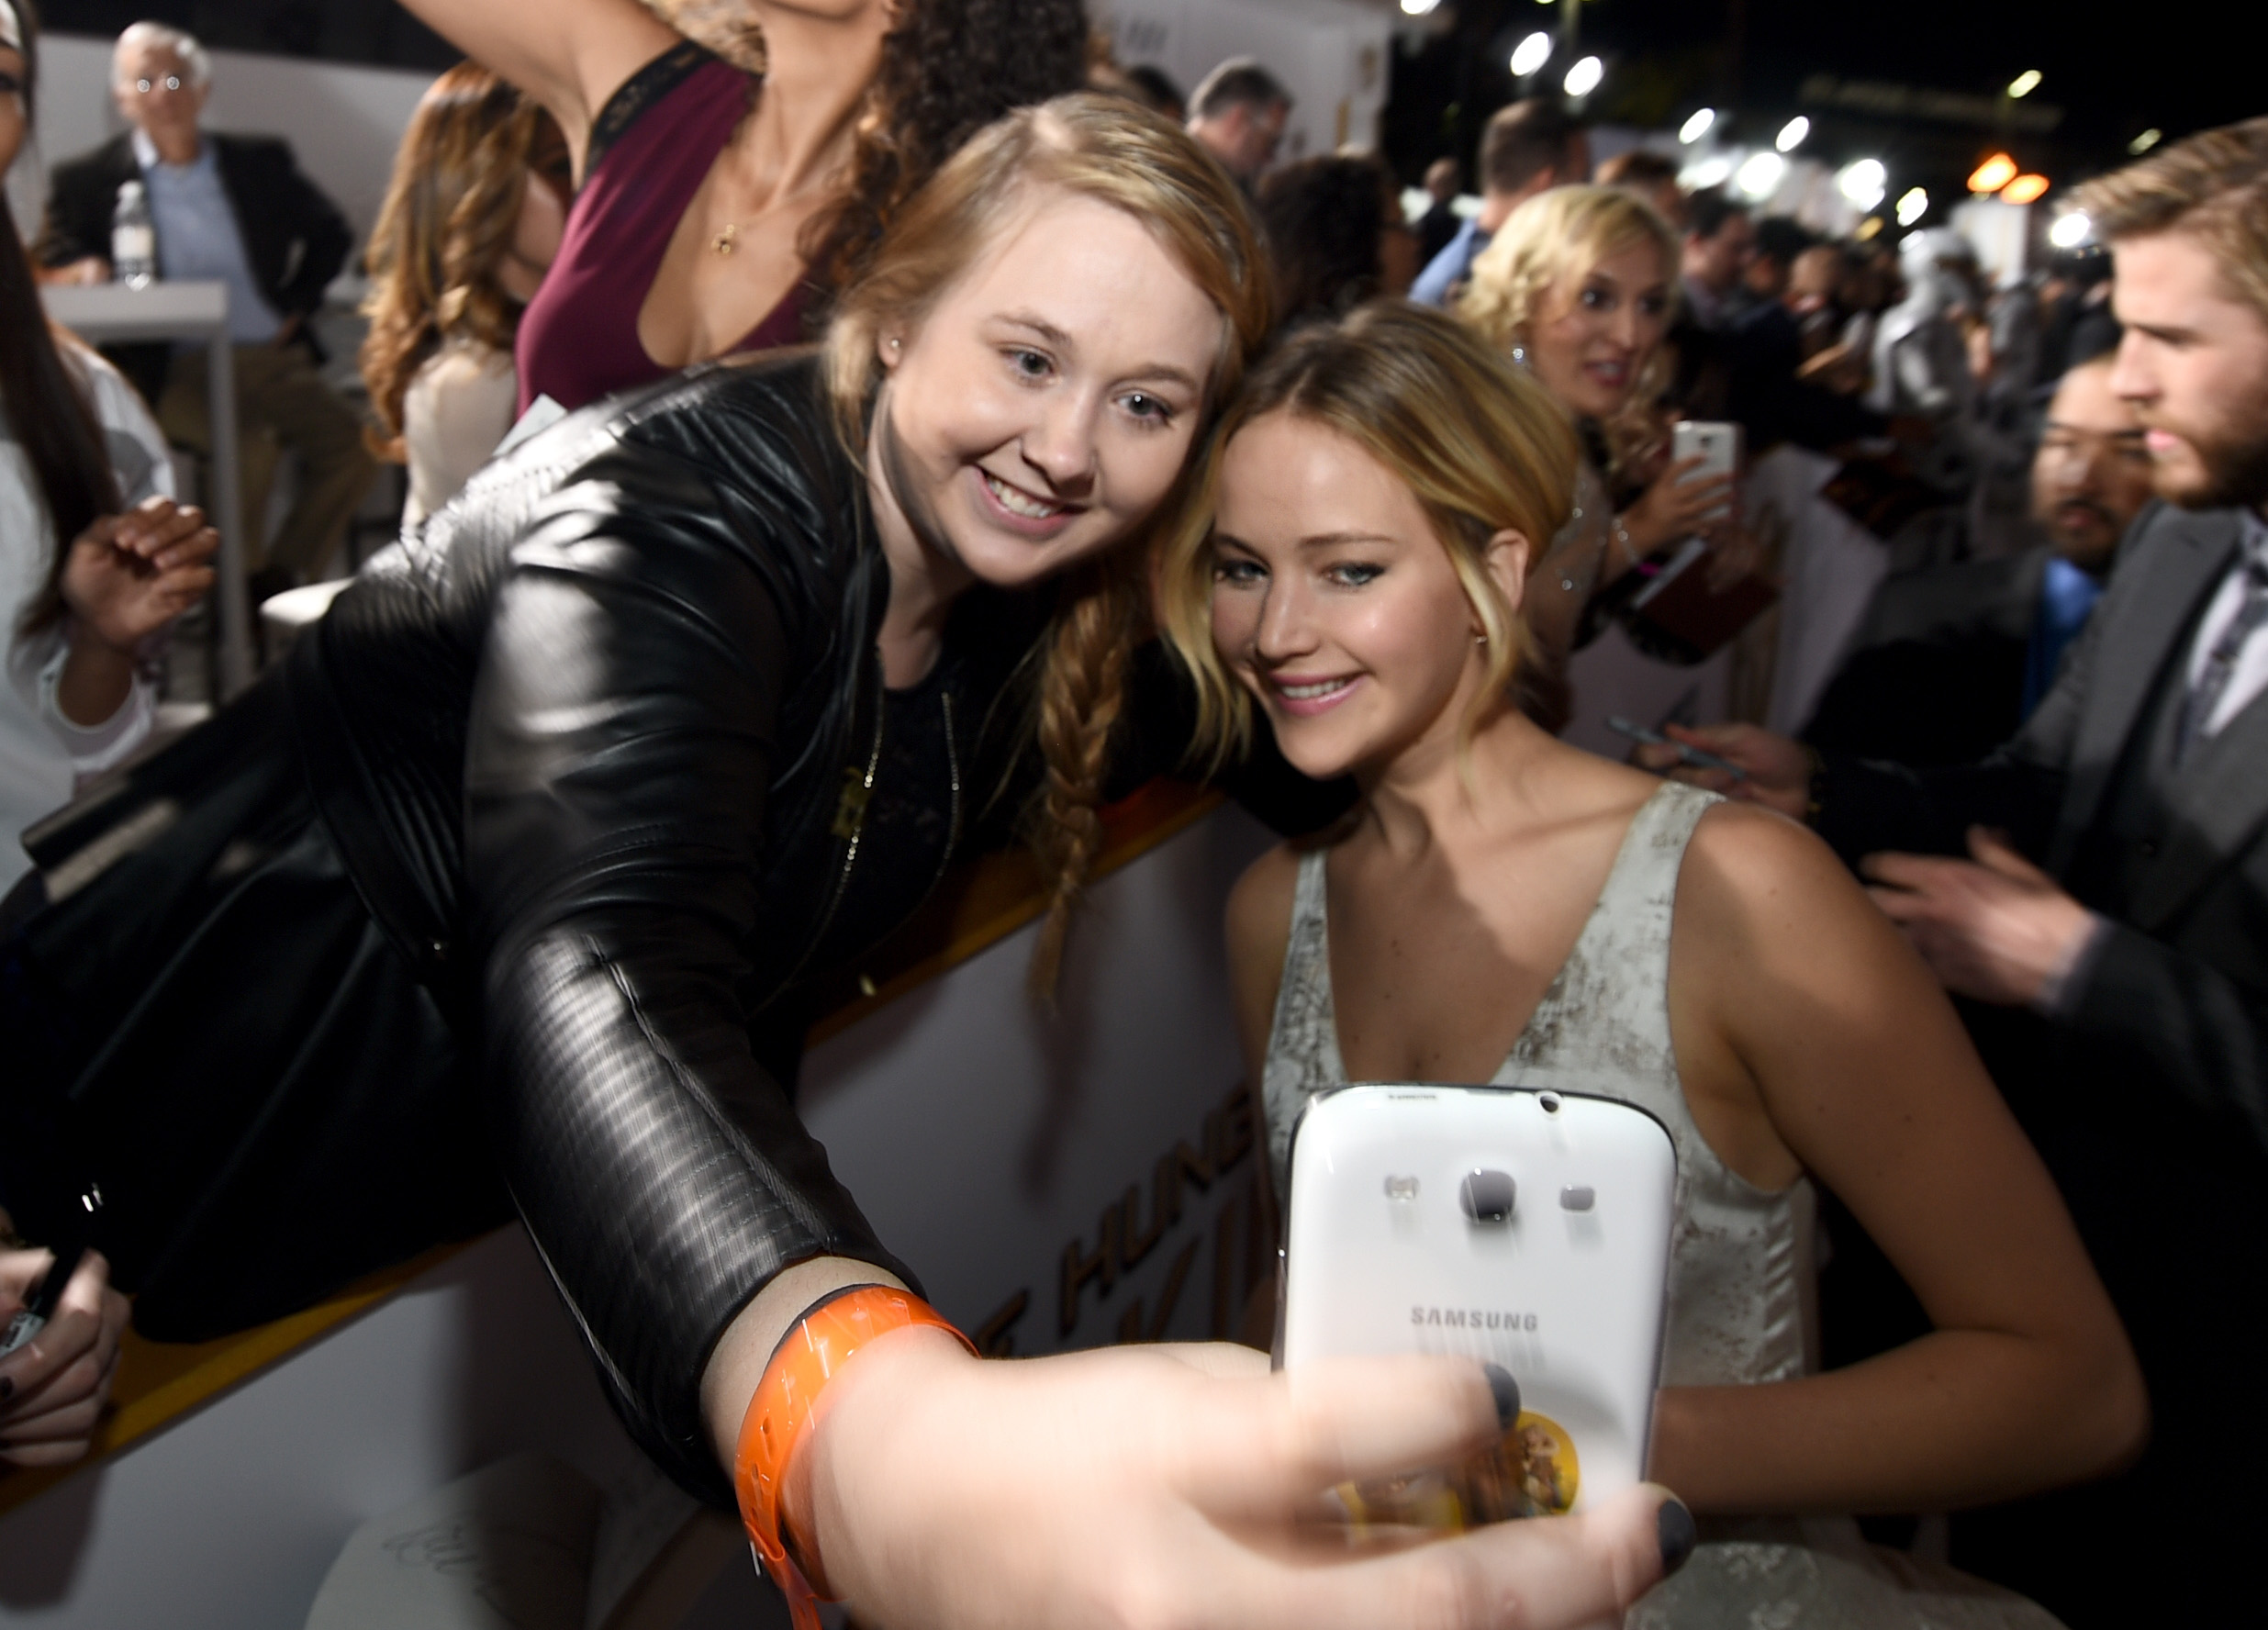 Fan Chelsea Boyce takes a selfie with  Jennifer Lawrence at the release of The Hunger Games: Mockingjay - Part 1 on Nov. 17, 2014 in Los Angeles.